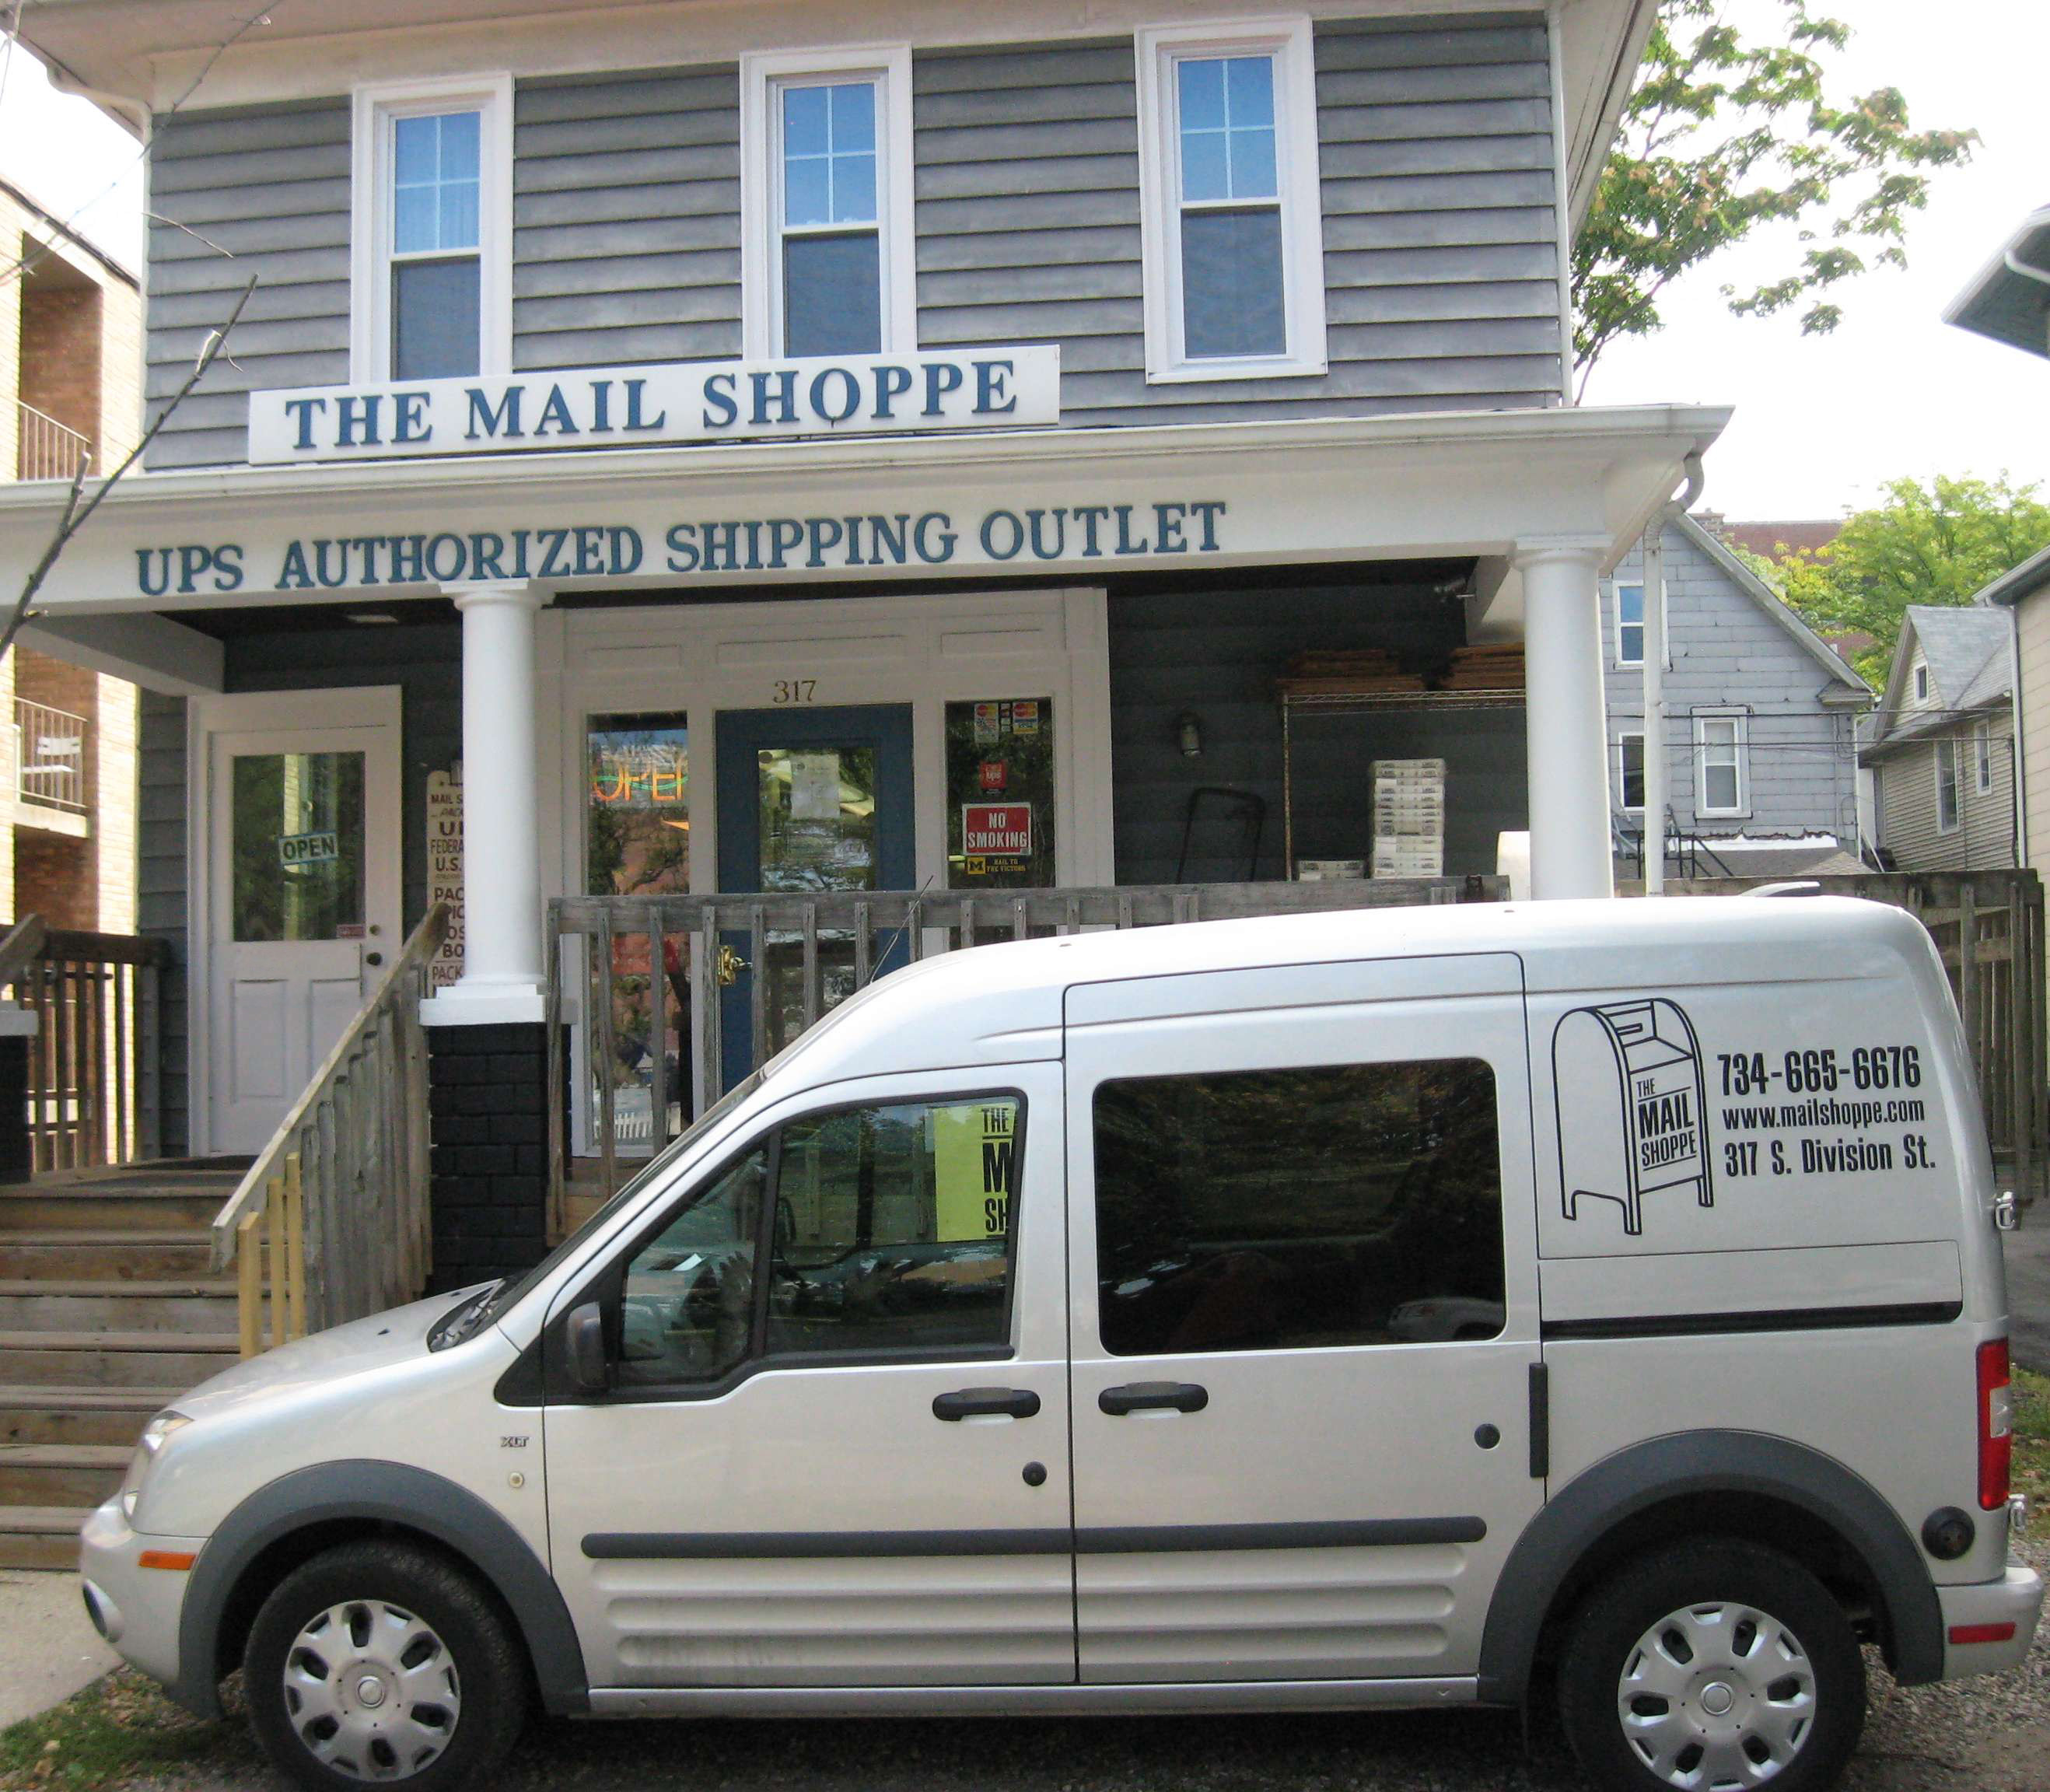 The Mail Shoppe